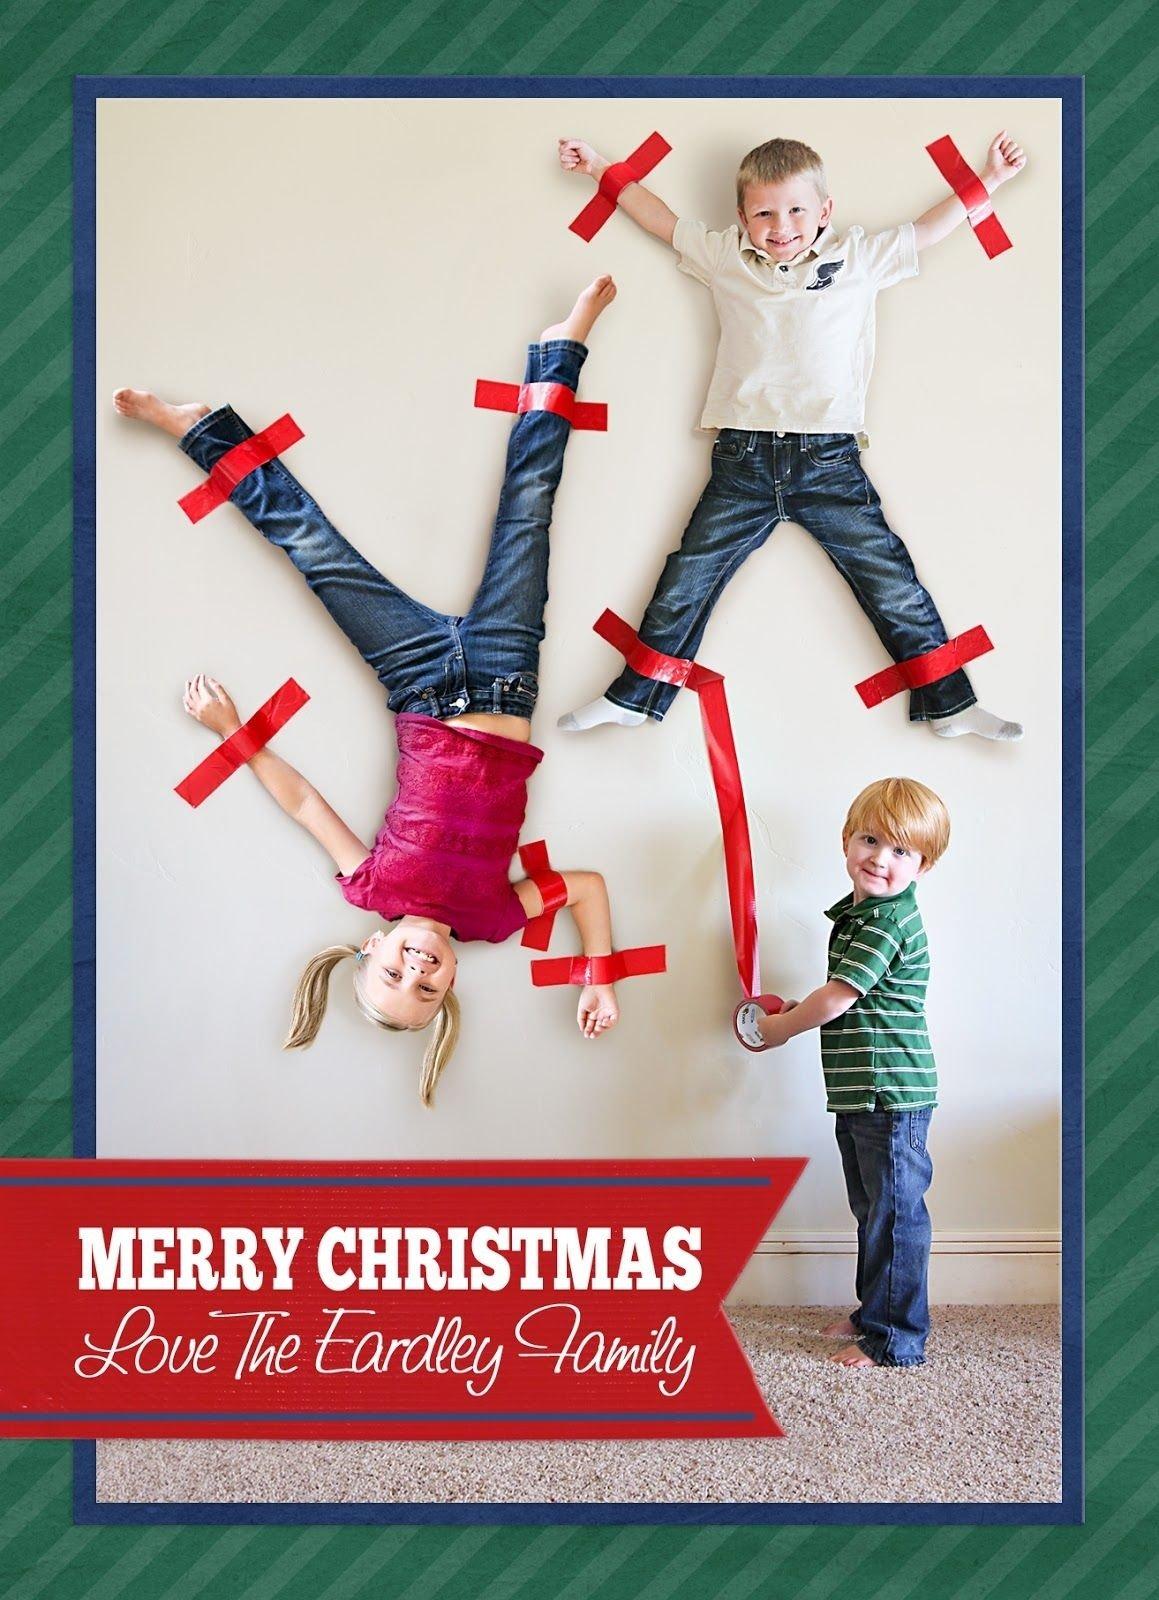 10 Most Popular Christmas Card Ideas With Kids 37 awesome christmas card ideas you should steal scrapbook blog 2020